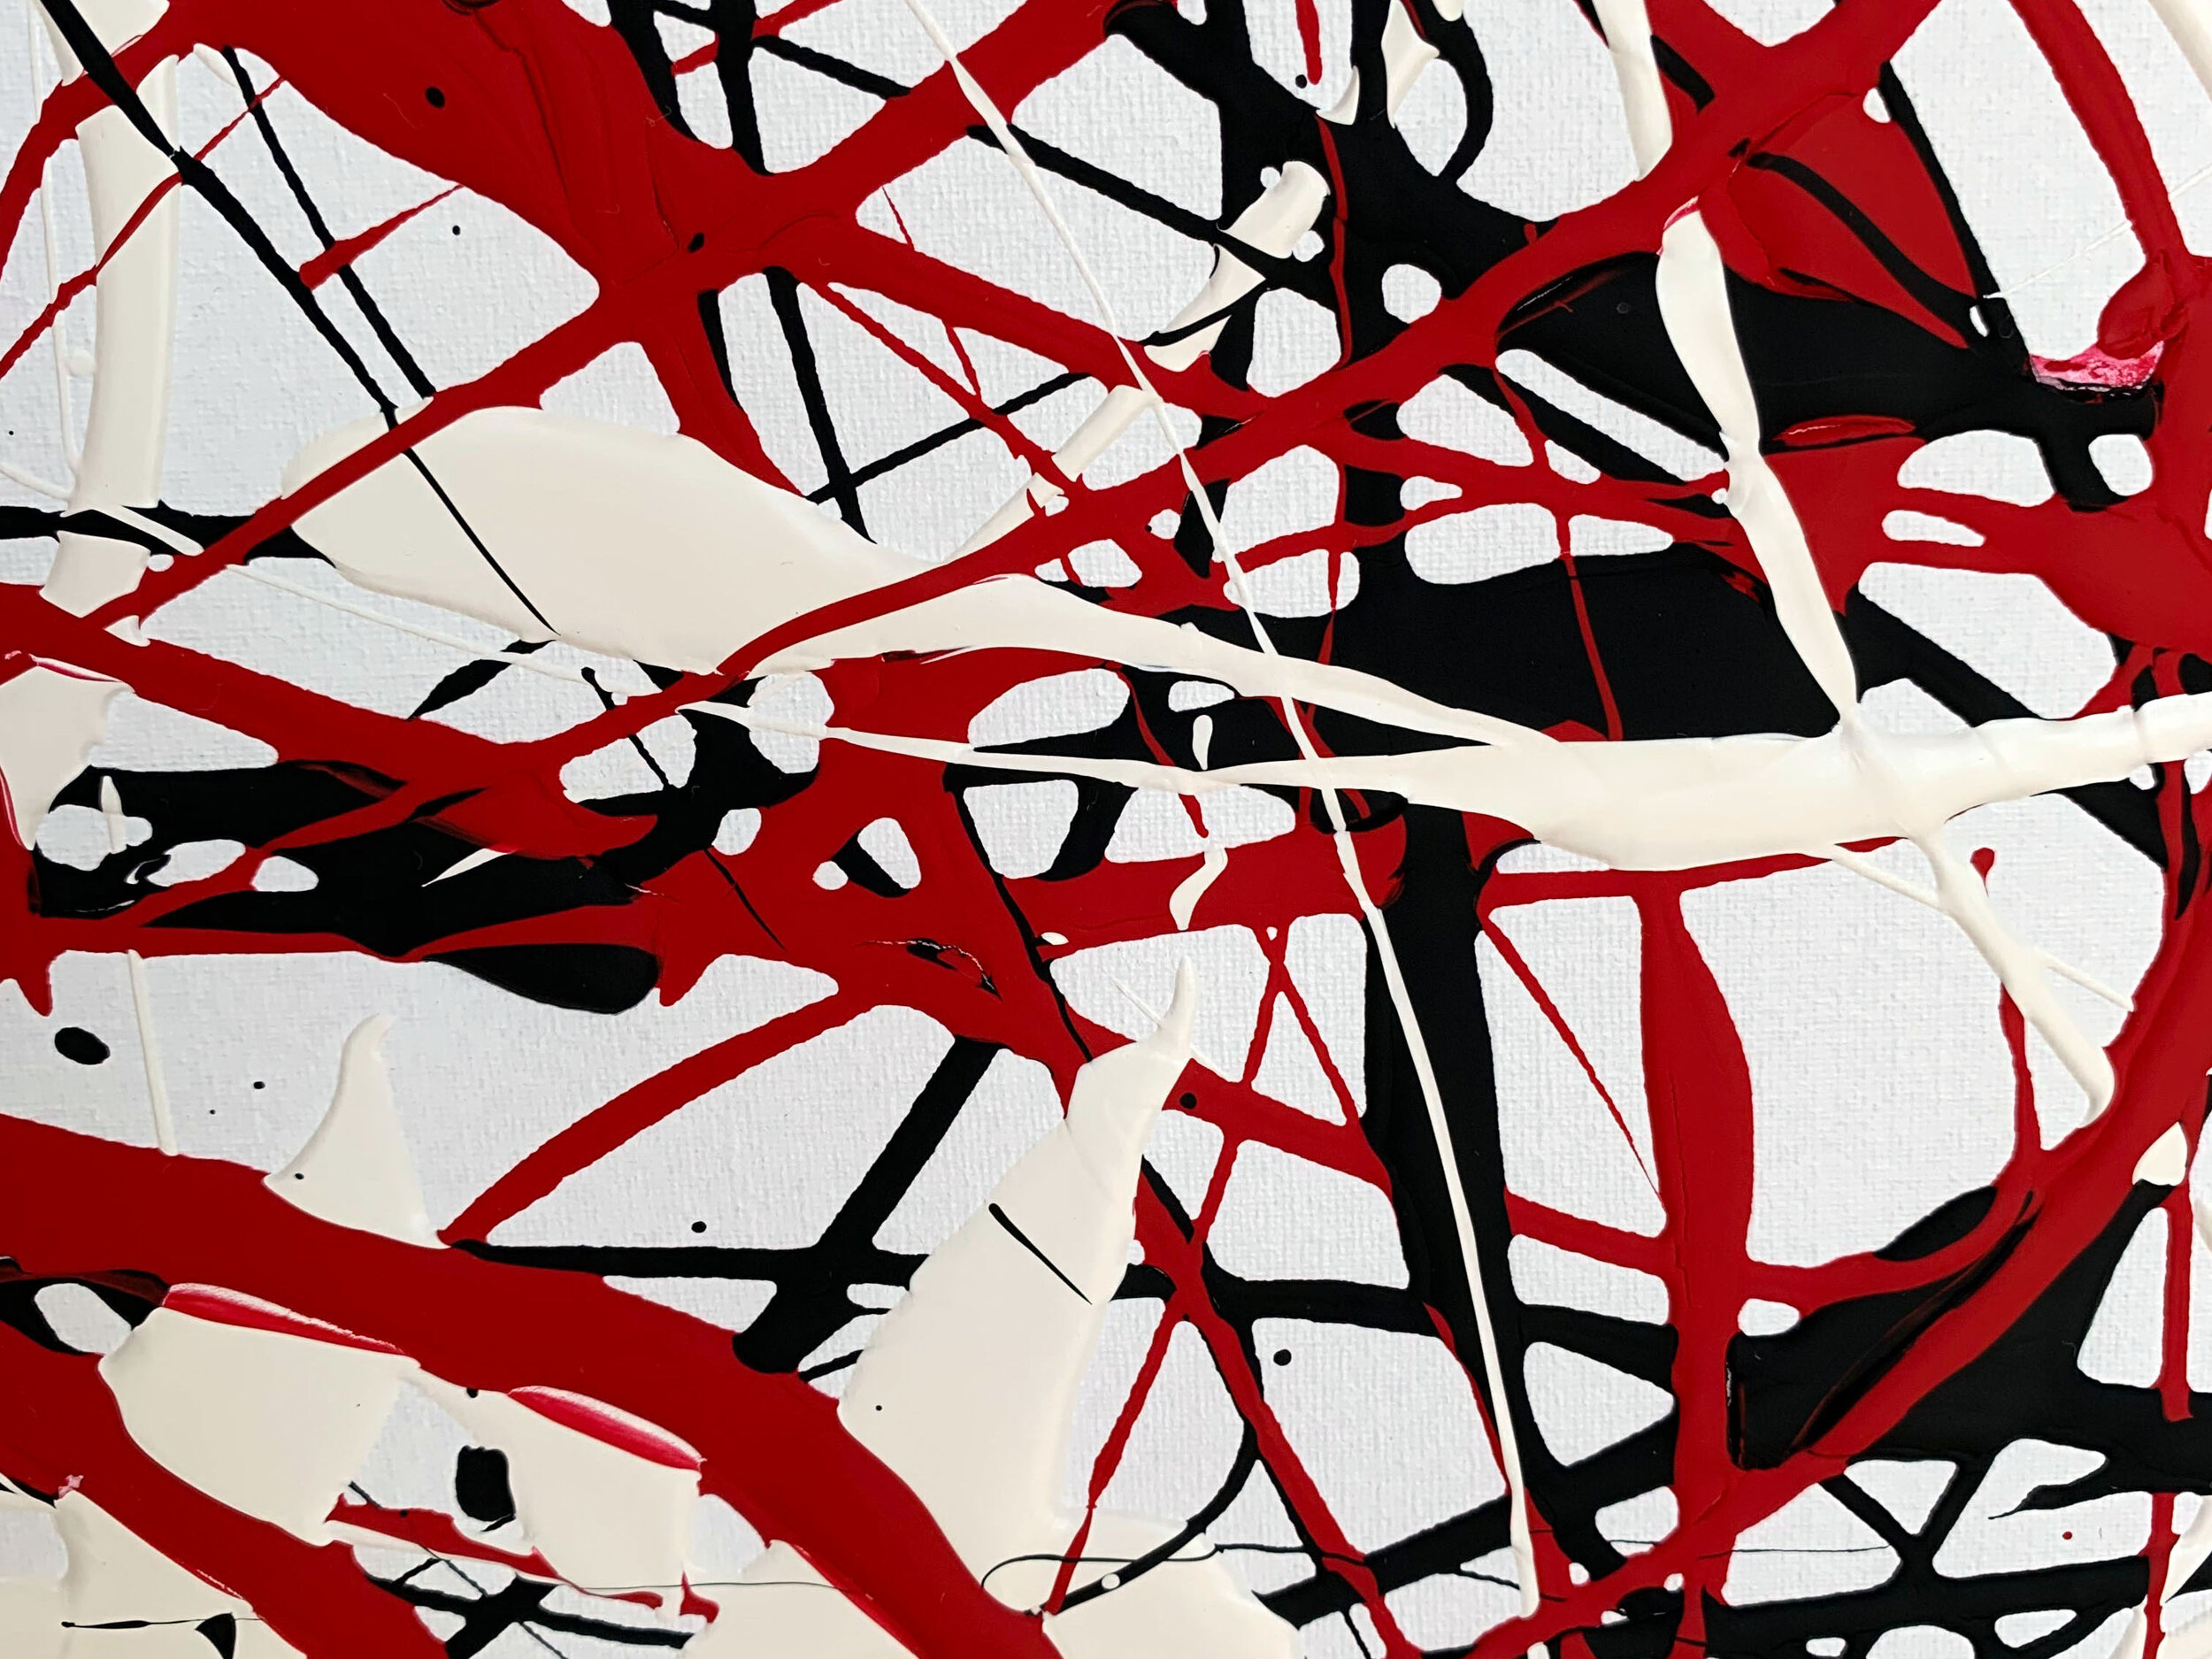 abstract-expressionism-painting-riben-shige-detail-2.jpg